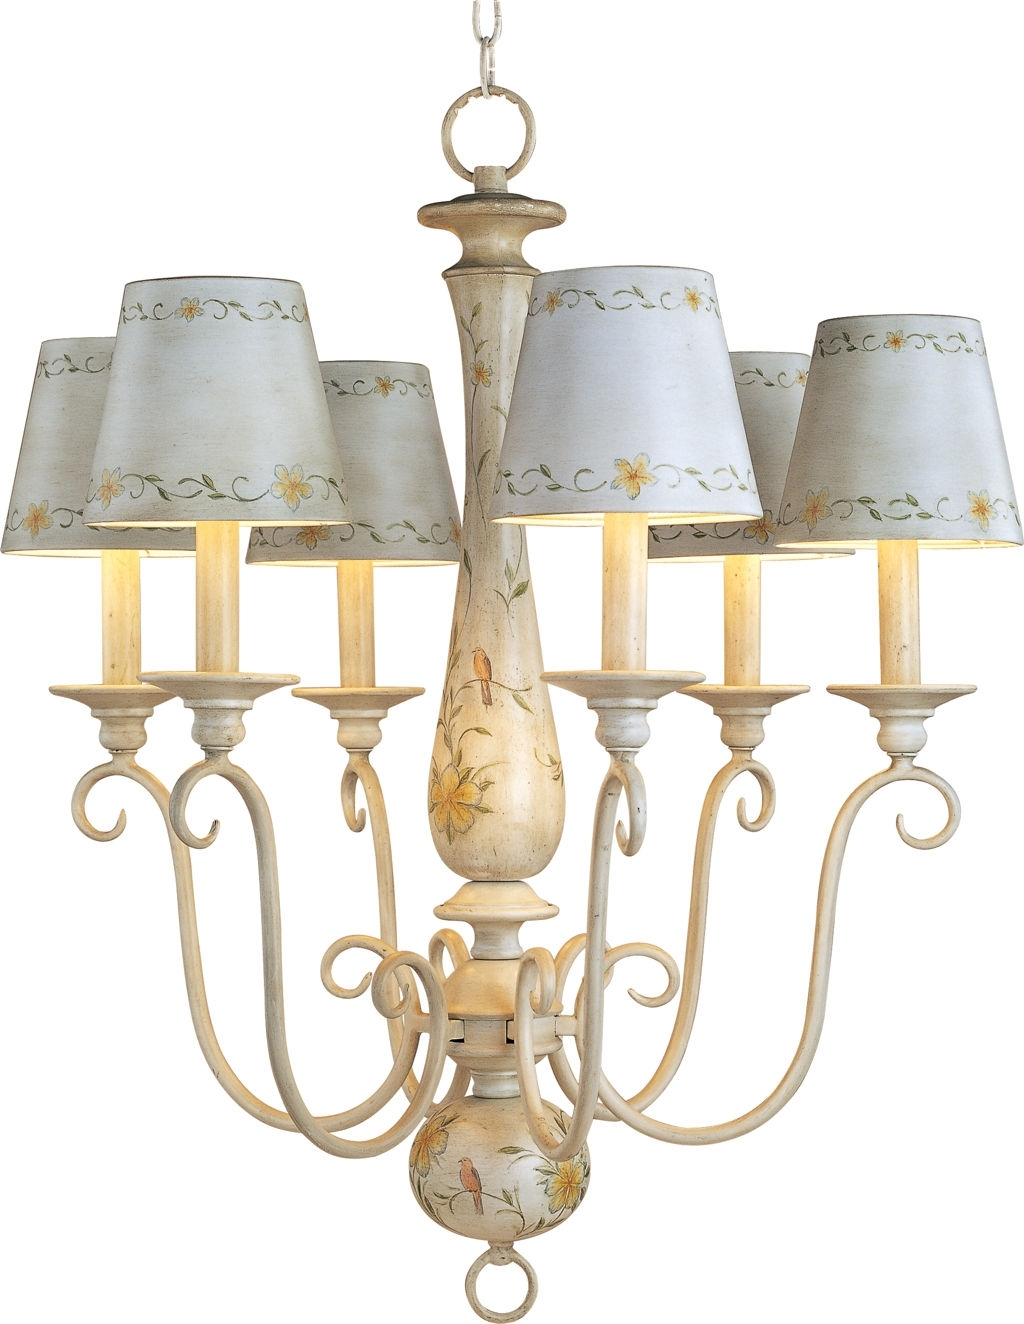 Widely Used Chandelier Lamp Shades Intended For Antique French Country Mini Chandelier With Ceramic Lamp Shades And (View 8 of 15)